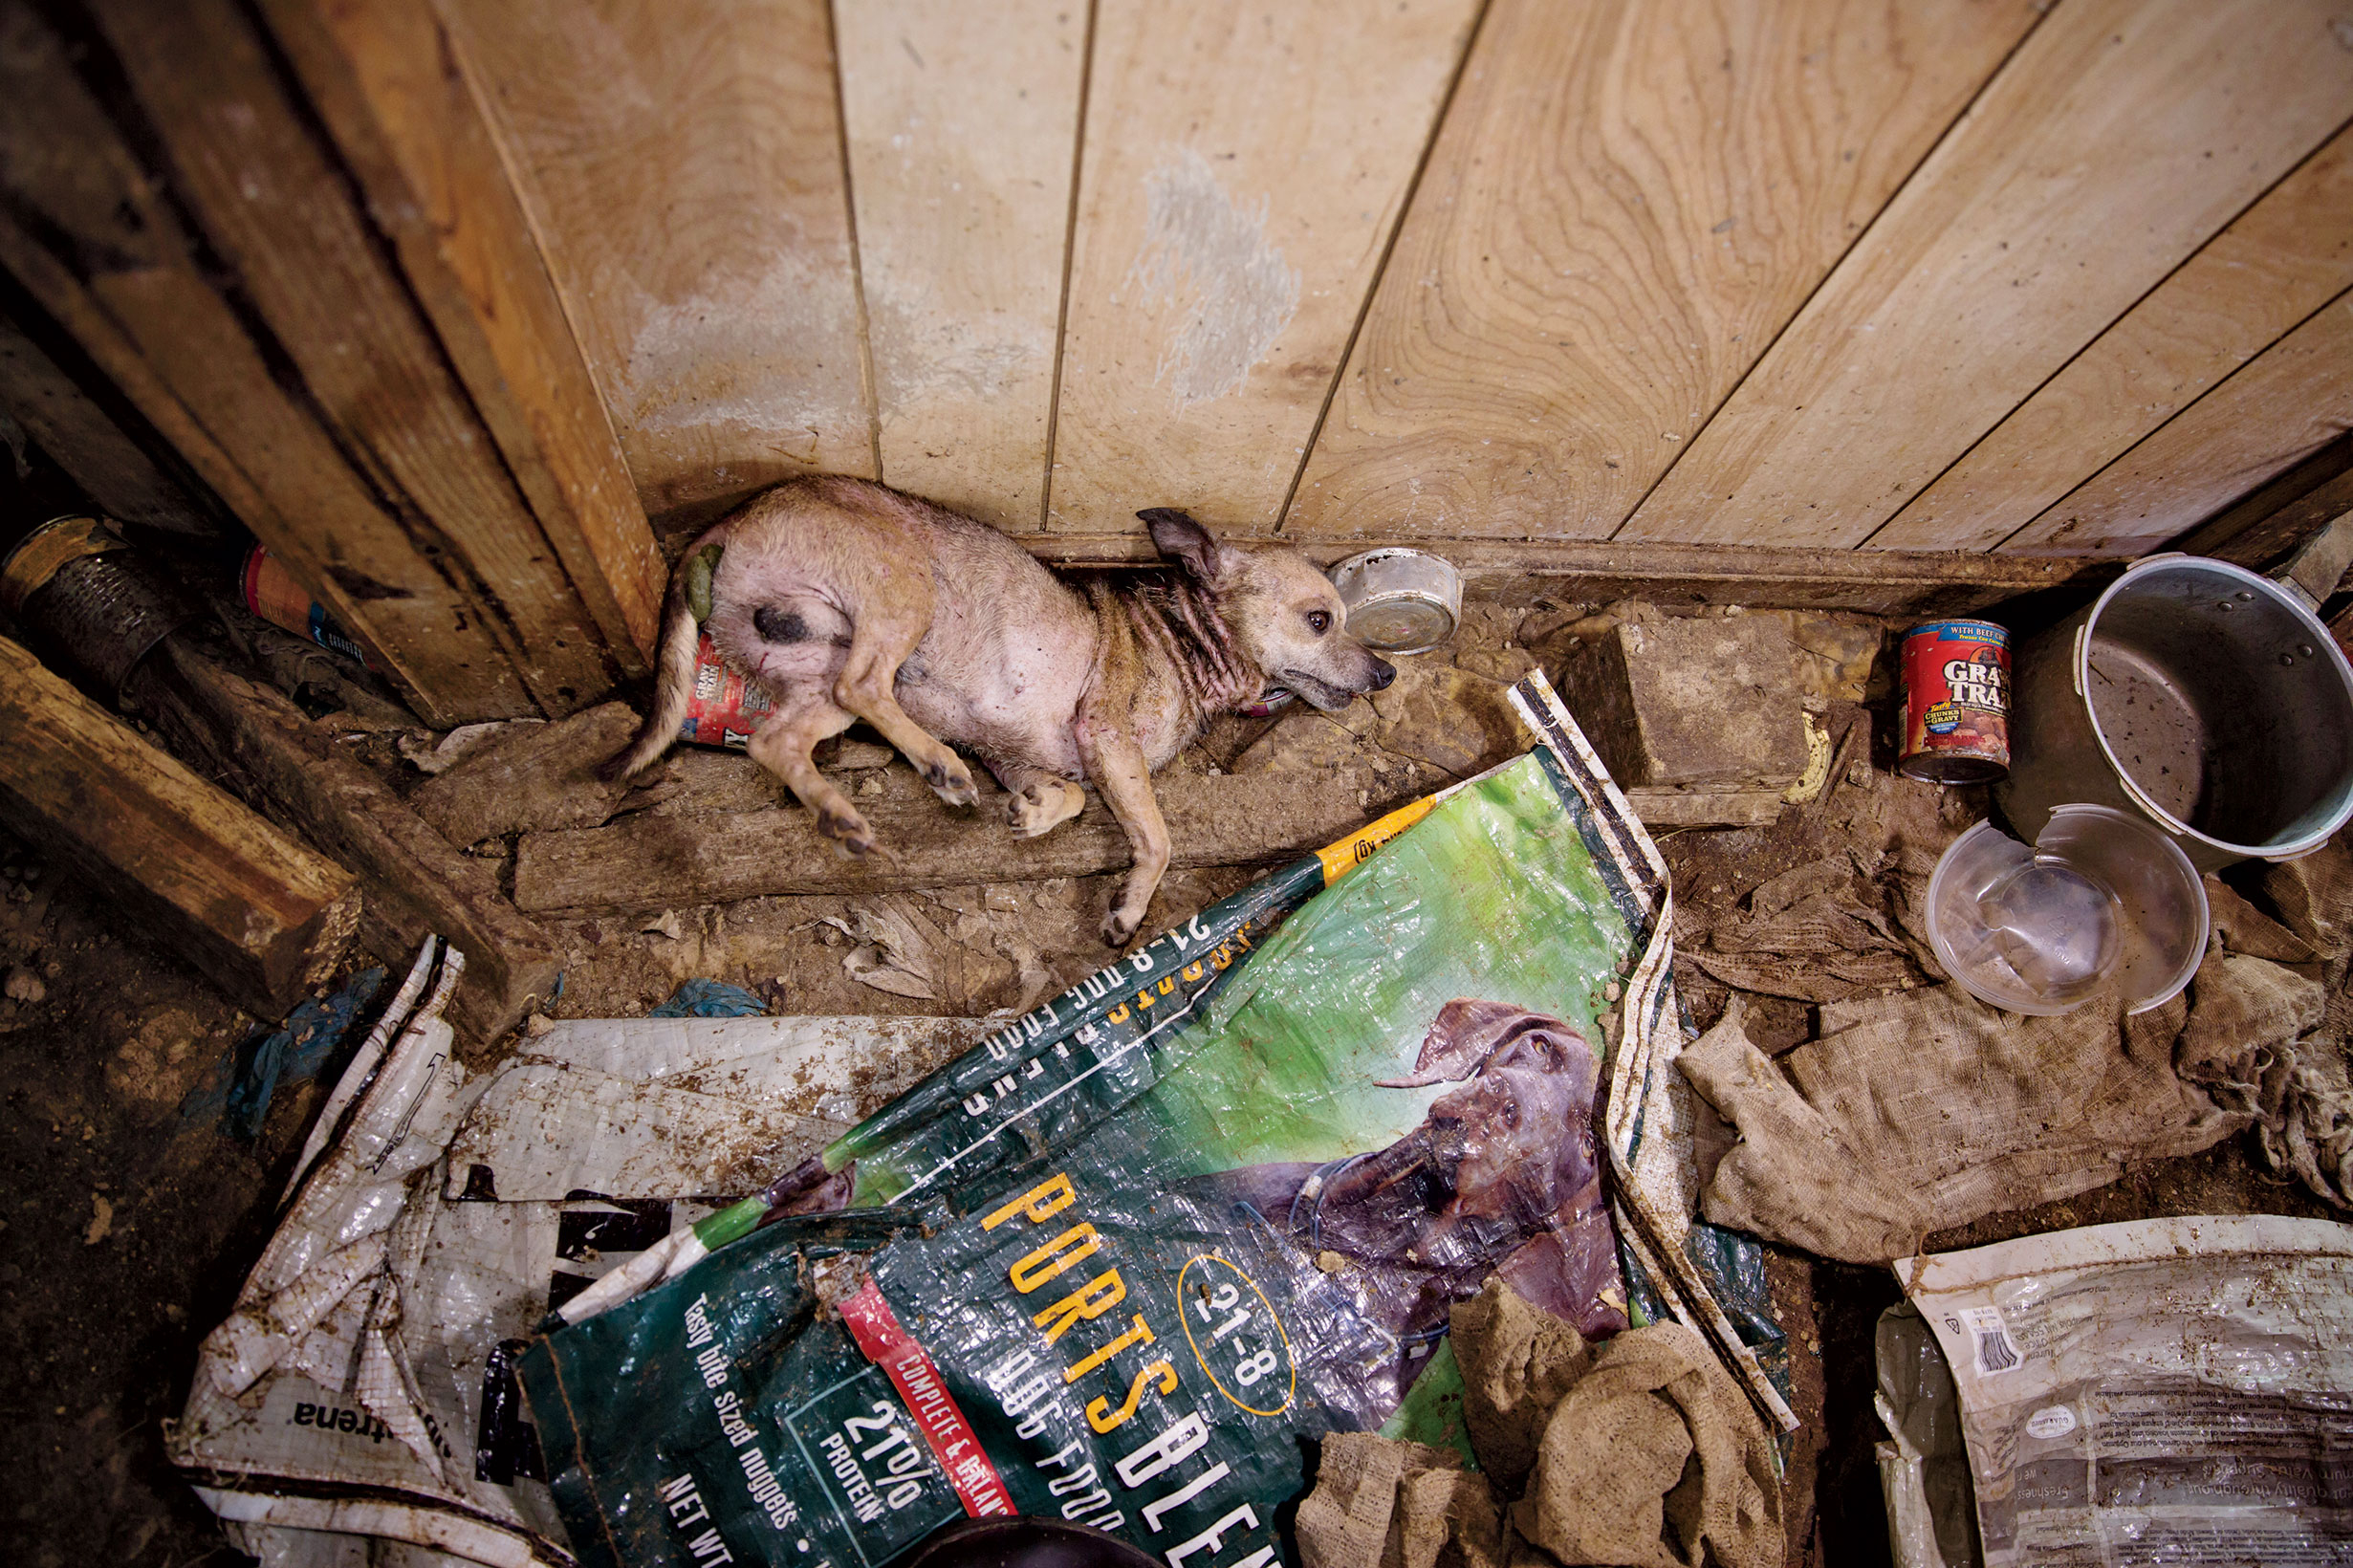 Becoming A Dog What Happens After The Puppy Mill